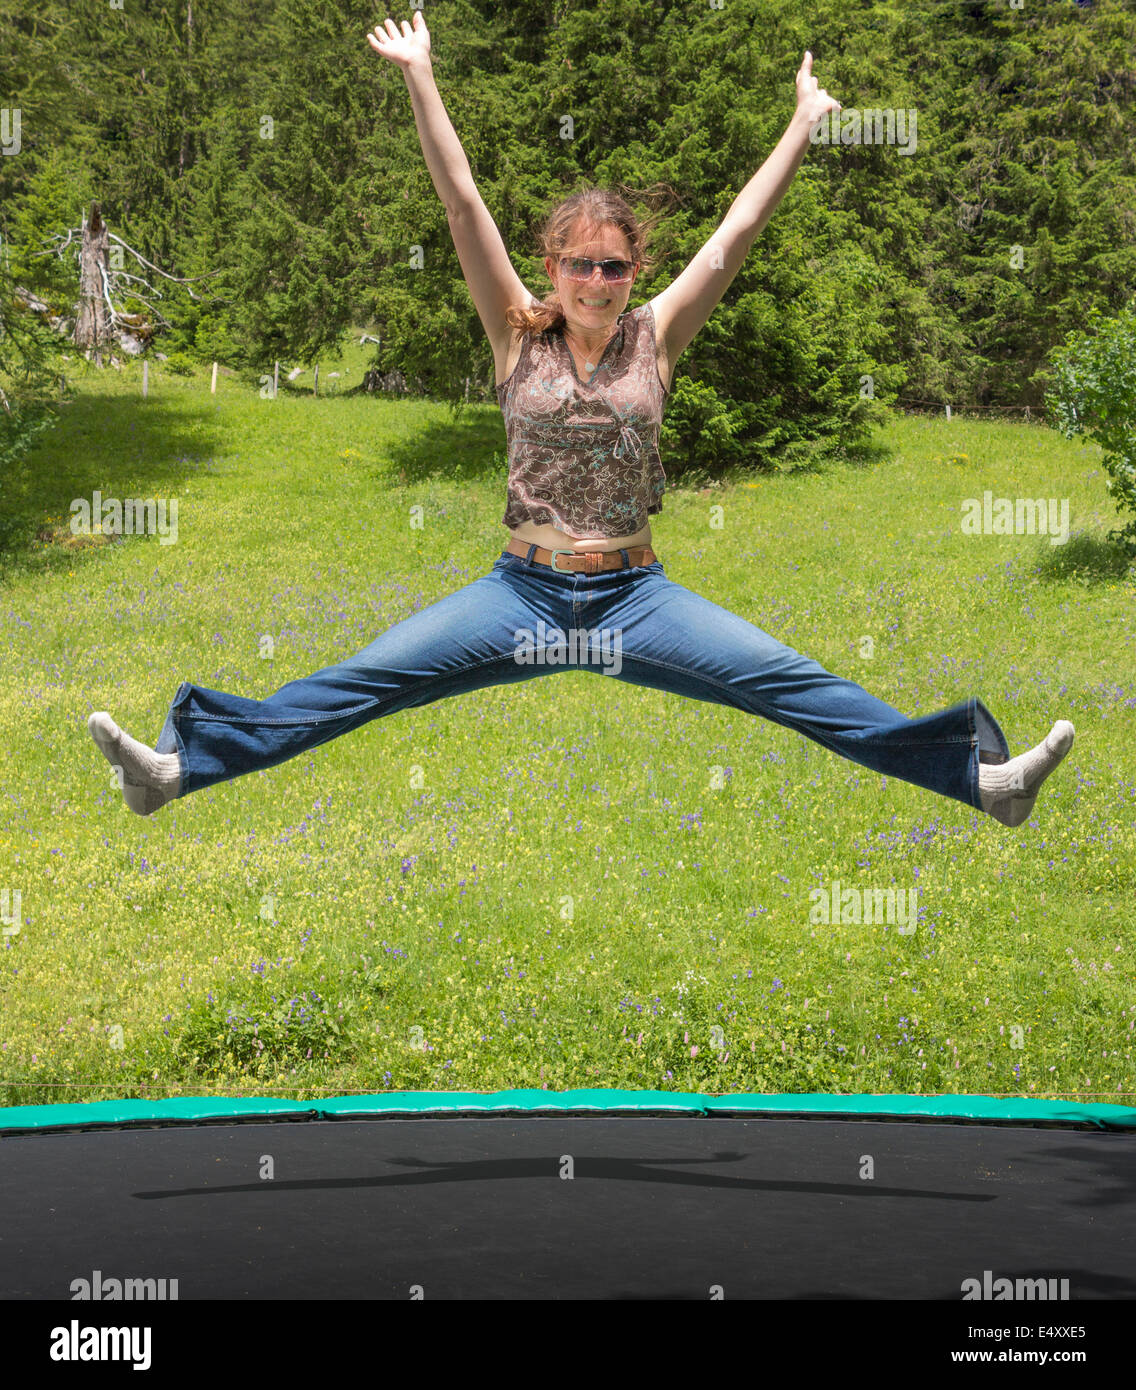 A young woman bouncing with joy on a trampoline in a mountain setting - Stock Image